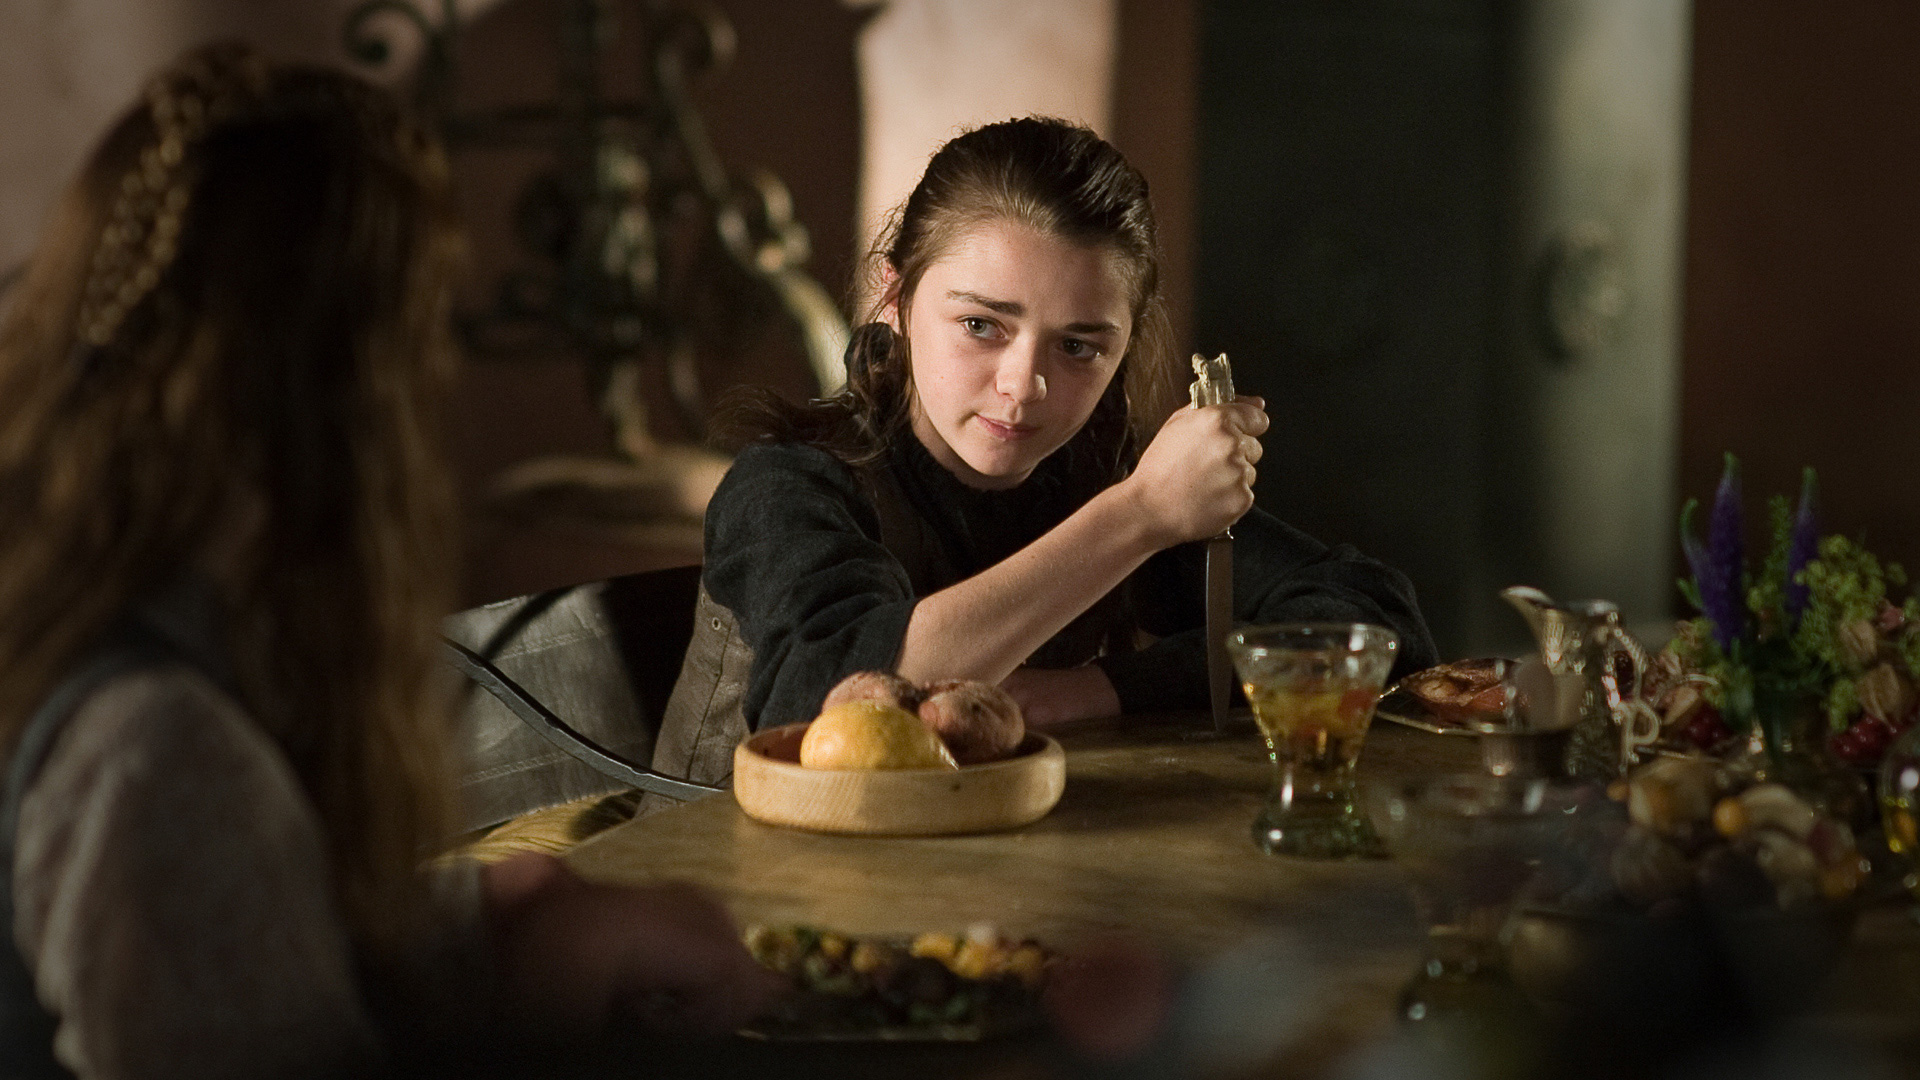 Ep03 arya knife in table 1920